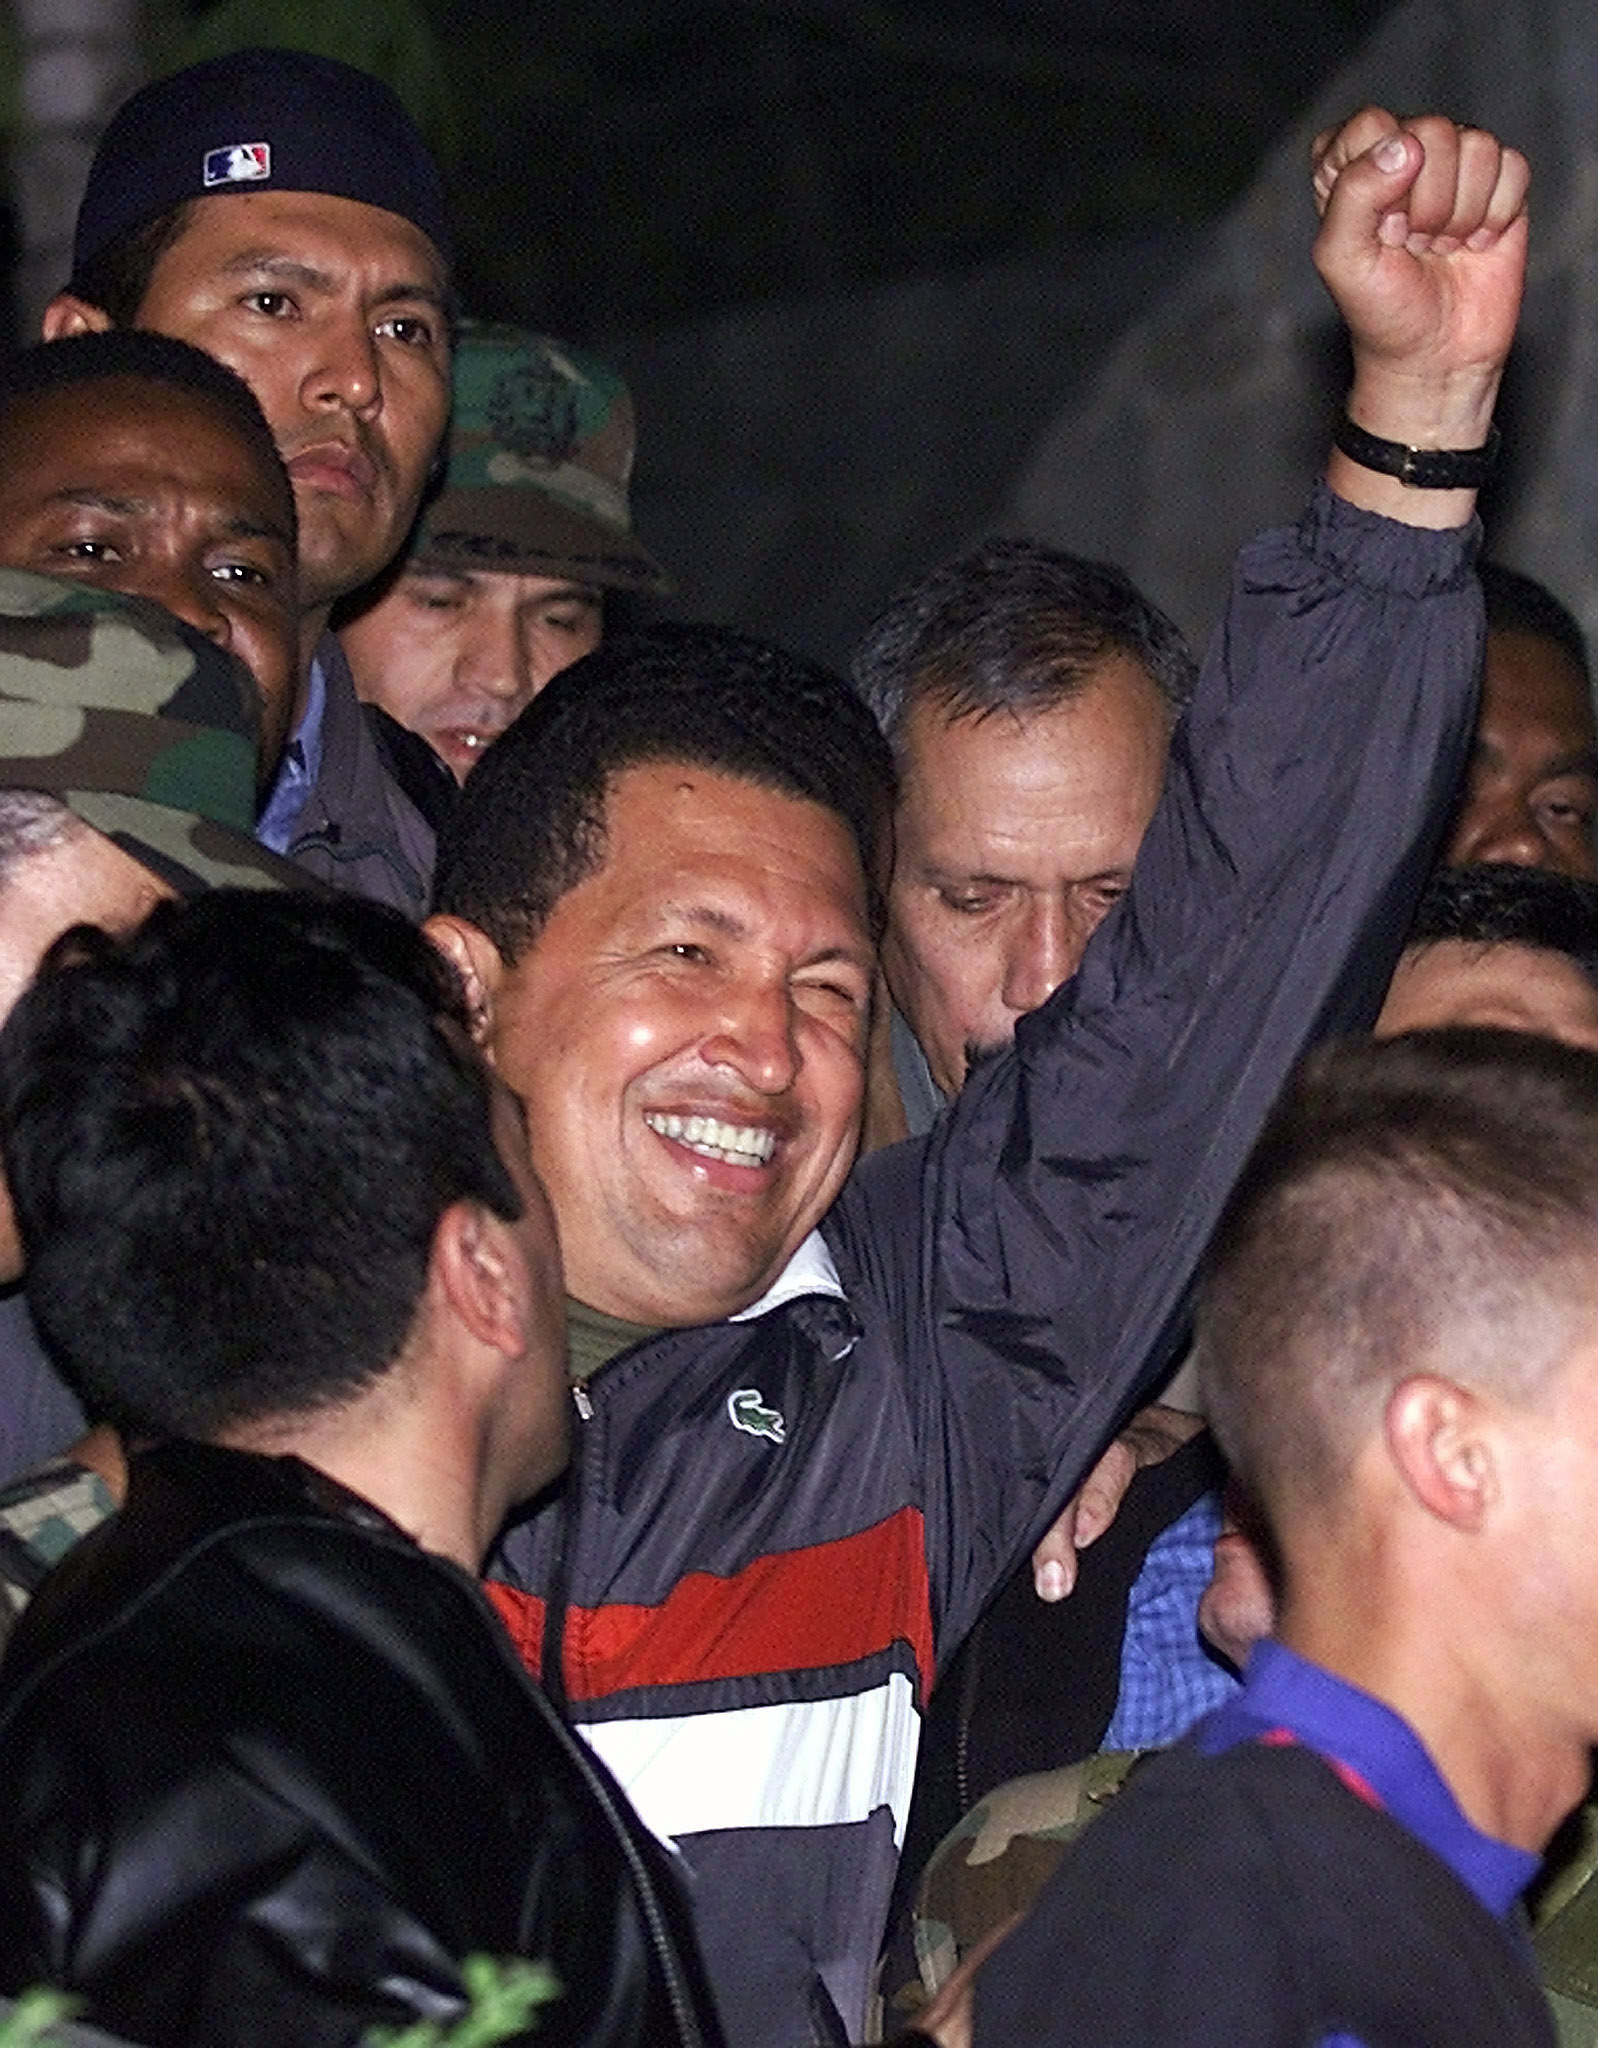 Venezuelan President Hugo Chavez (C) salutes on arrival at the Miraflores palace April 14, 2002. ©REUTERS